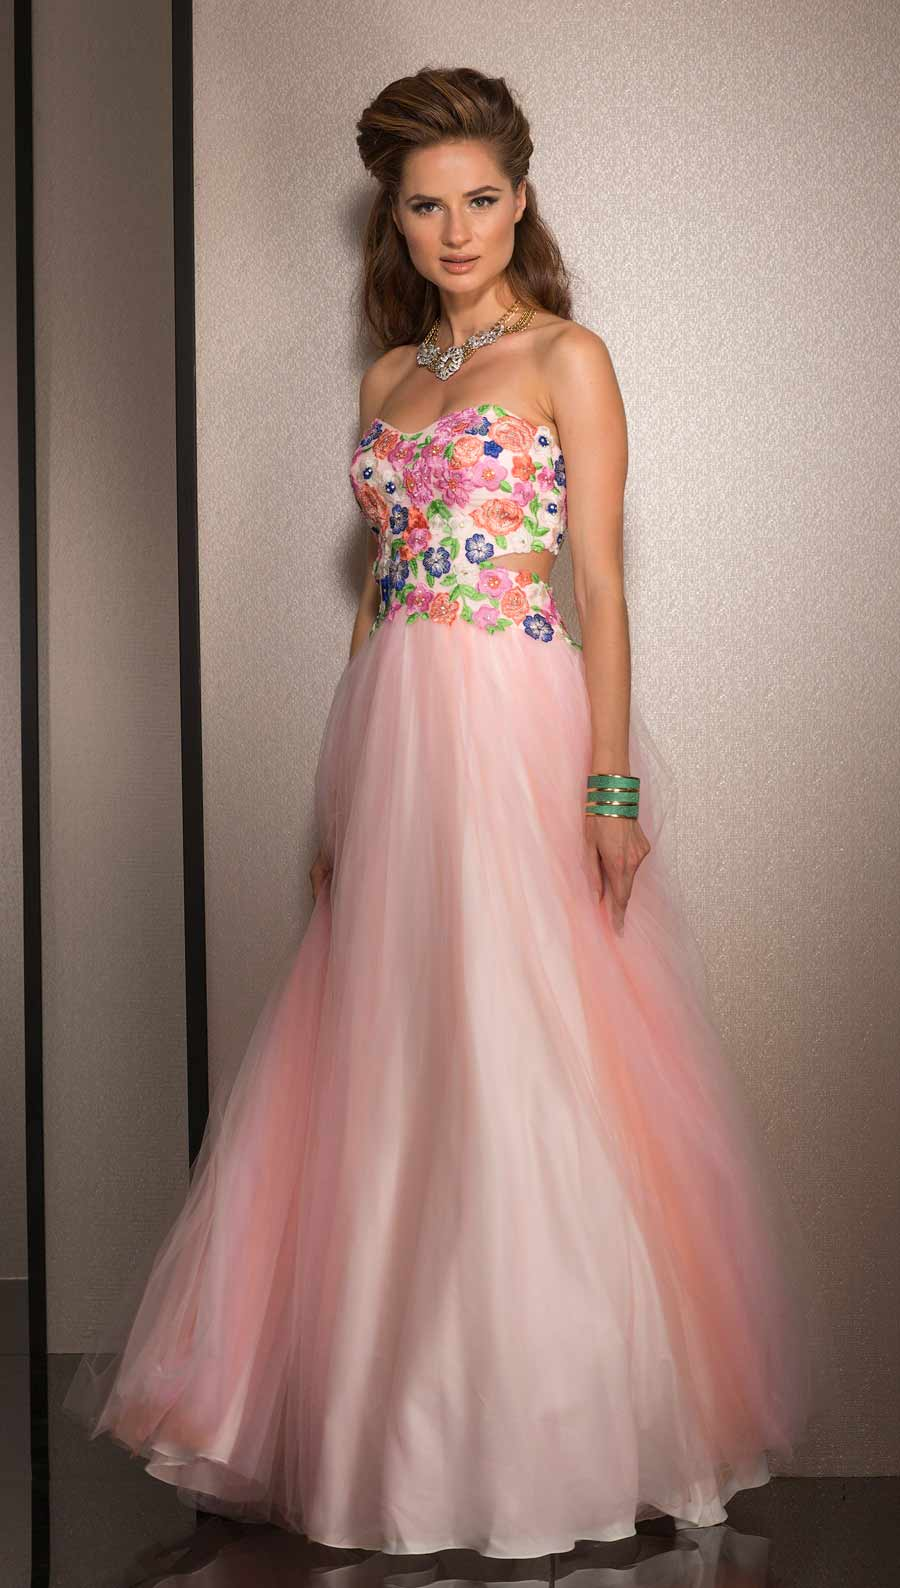 Clarisse Floral Ball Gown 2531 | Promgirl.net